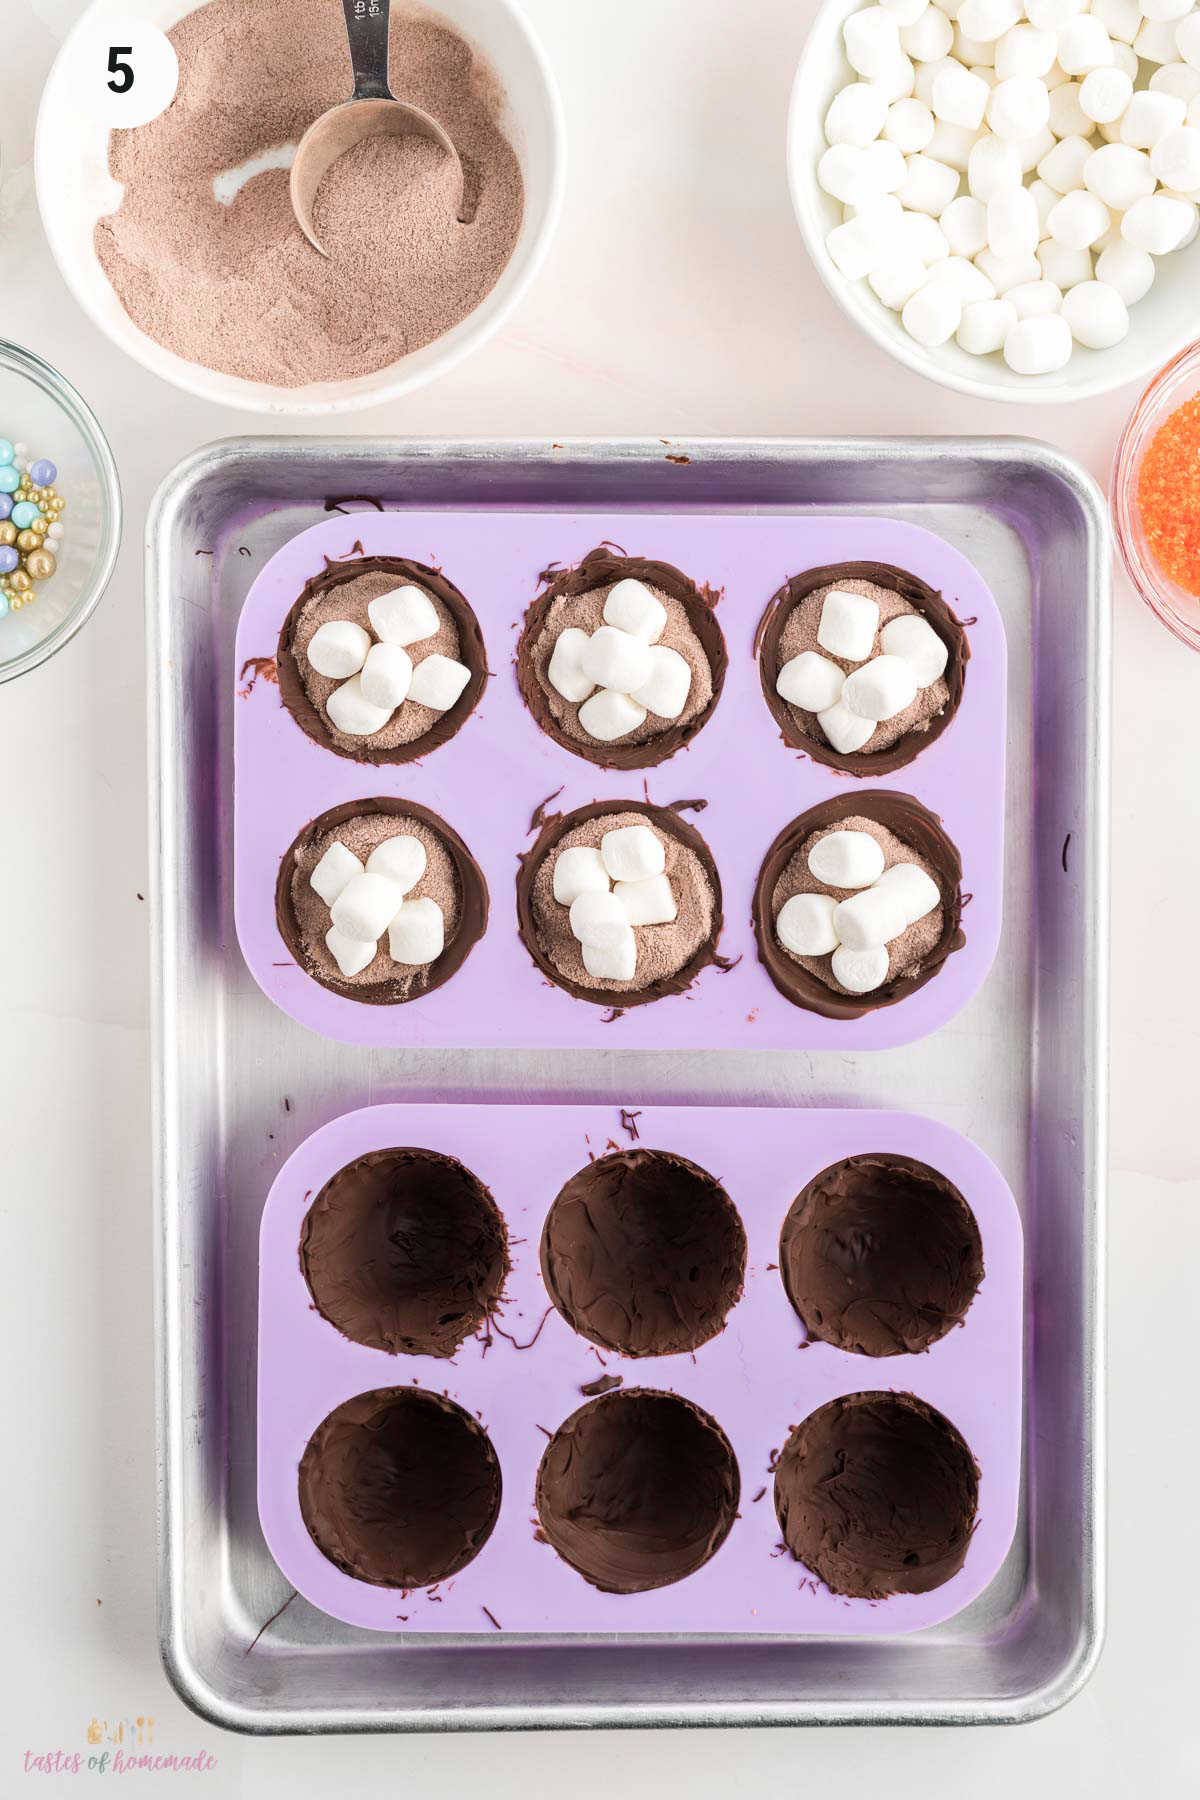 Six chocolate molds filled with hot chocolate mix and marshmallows and six empty halves.